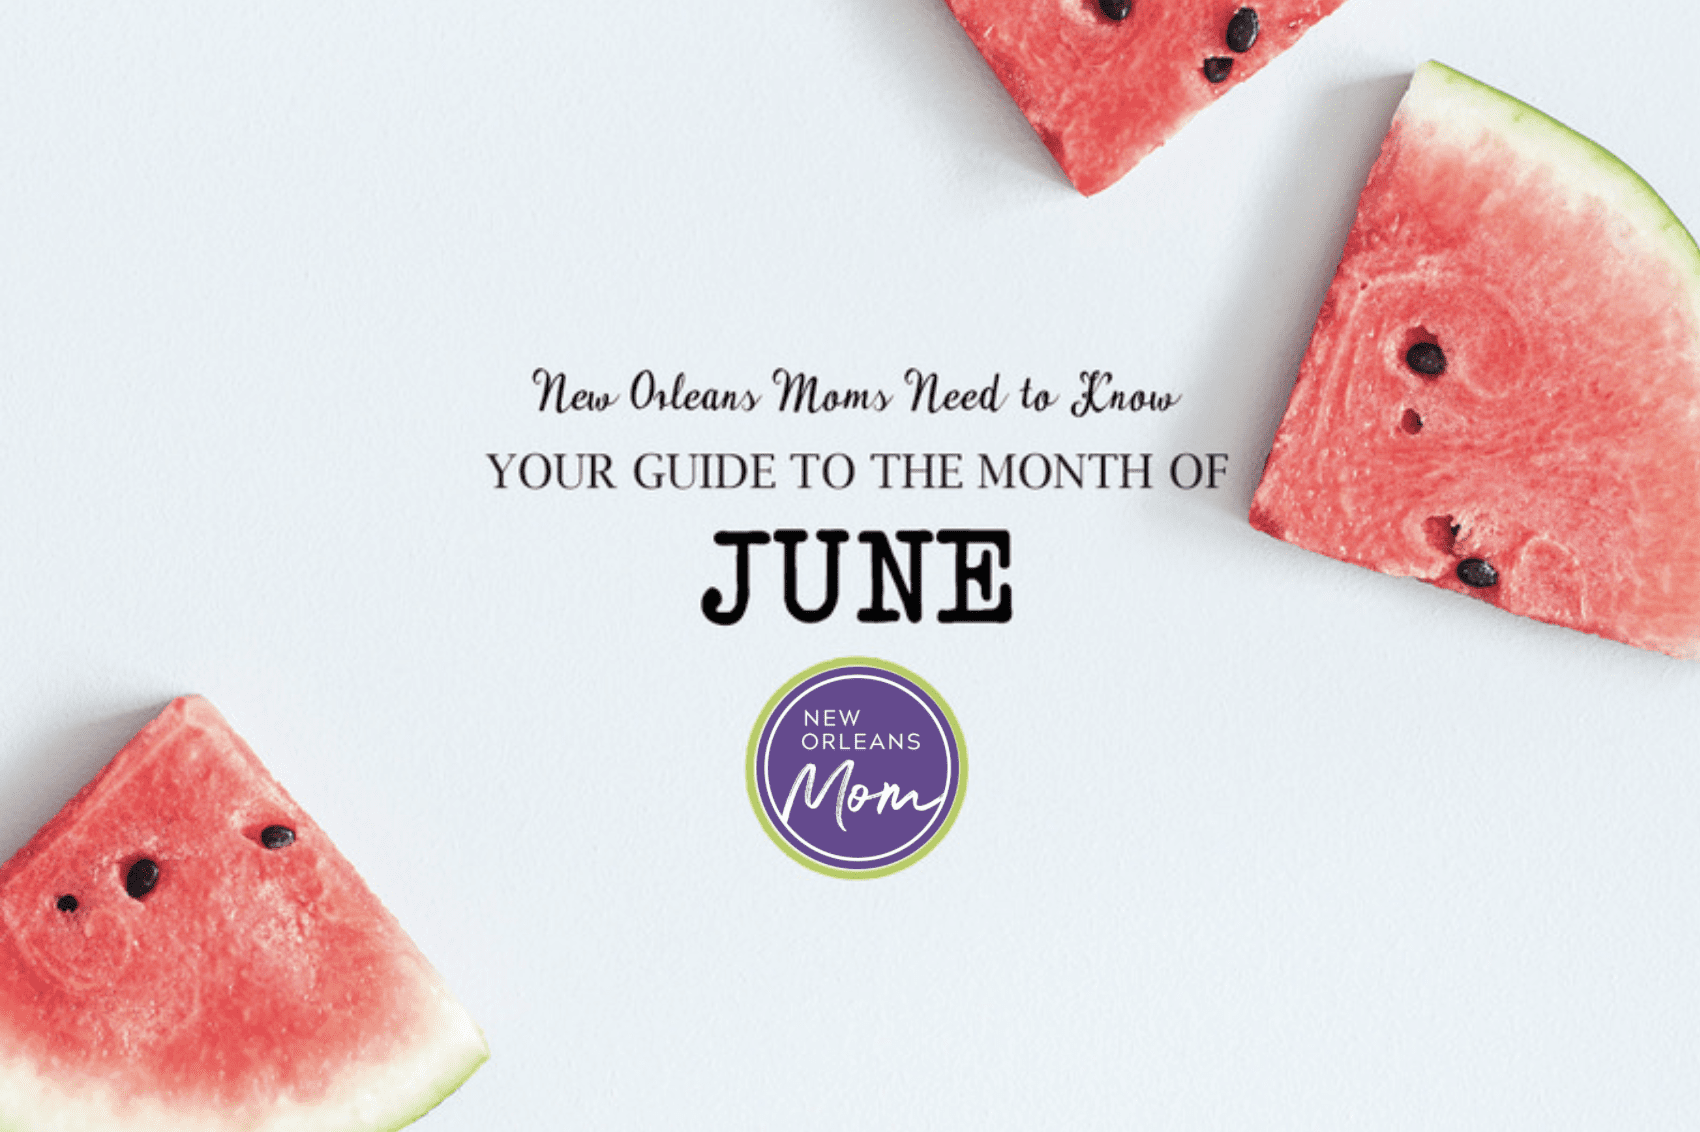 NOLA monthly guide for June 2021